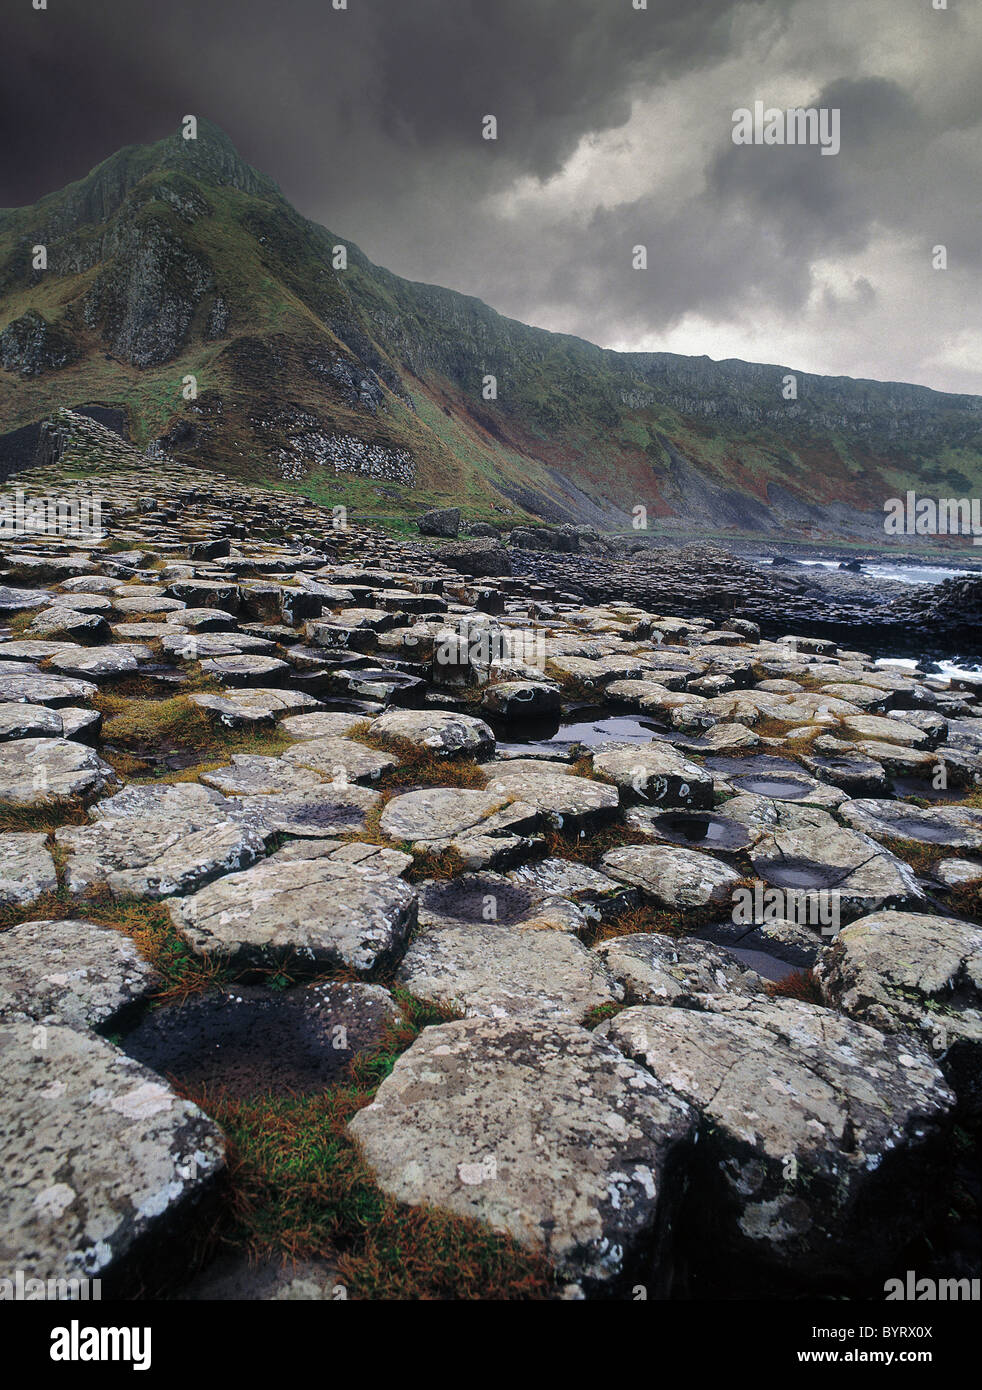 The Giant's Causeway in Northern Ireland - Stock Image